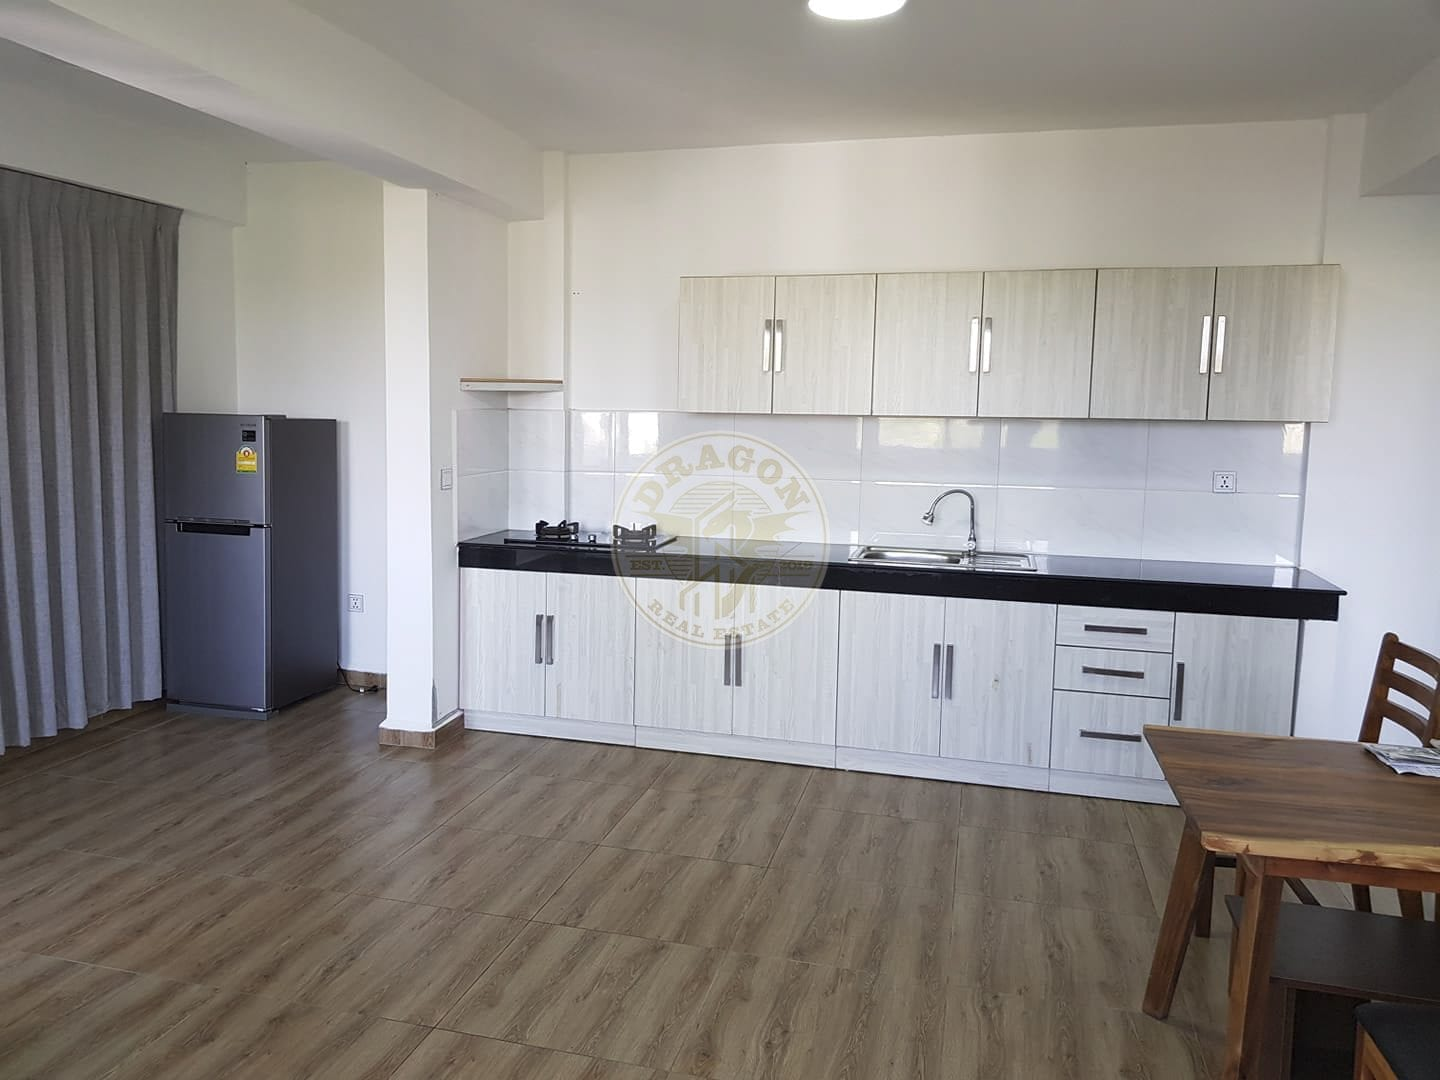 New Homes Apartment for Rent in Sihanoukville